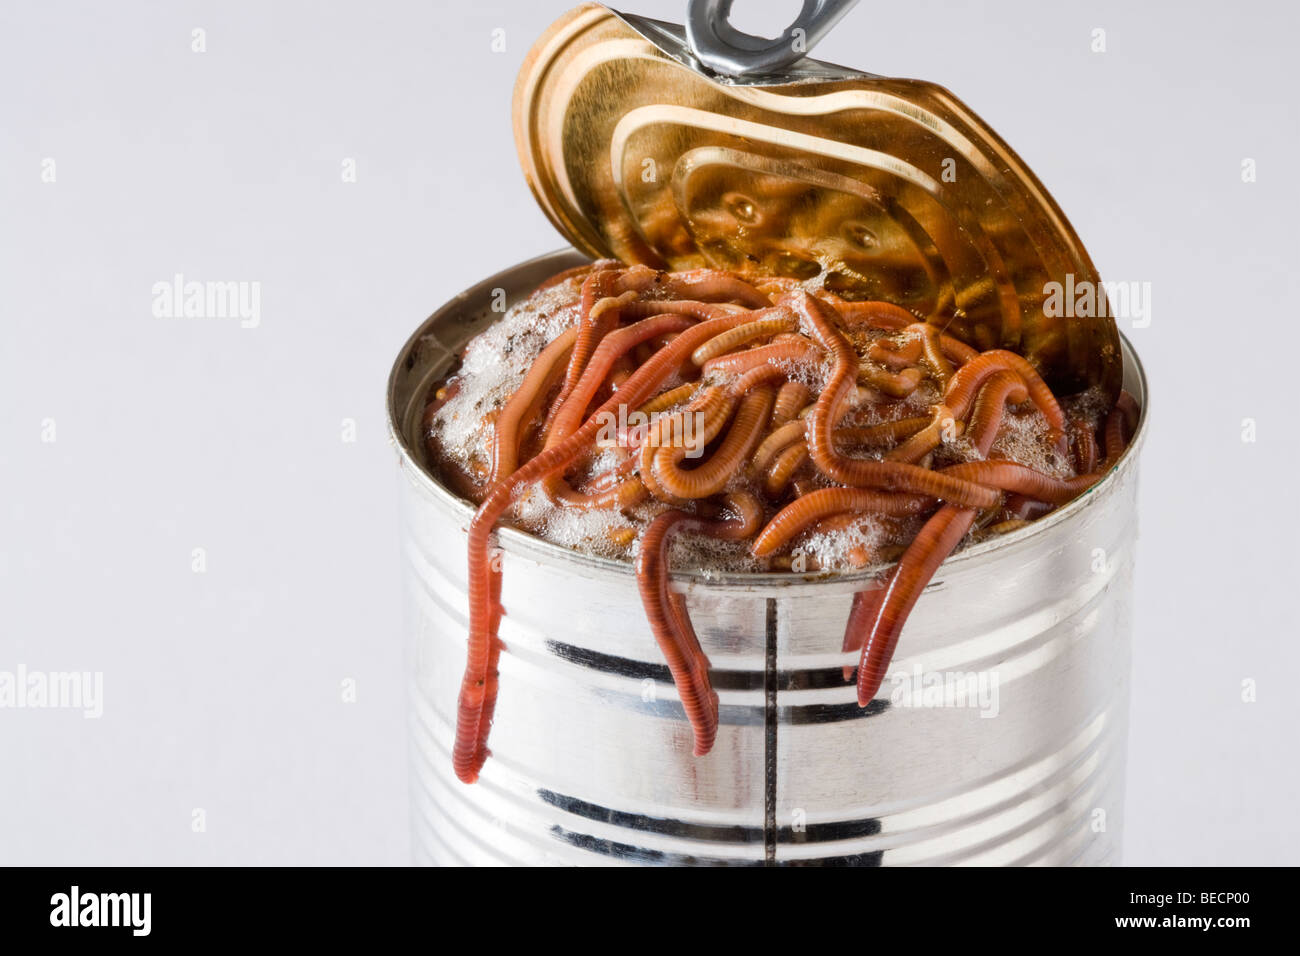 Opening a can of worms. - Stock Image